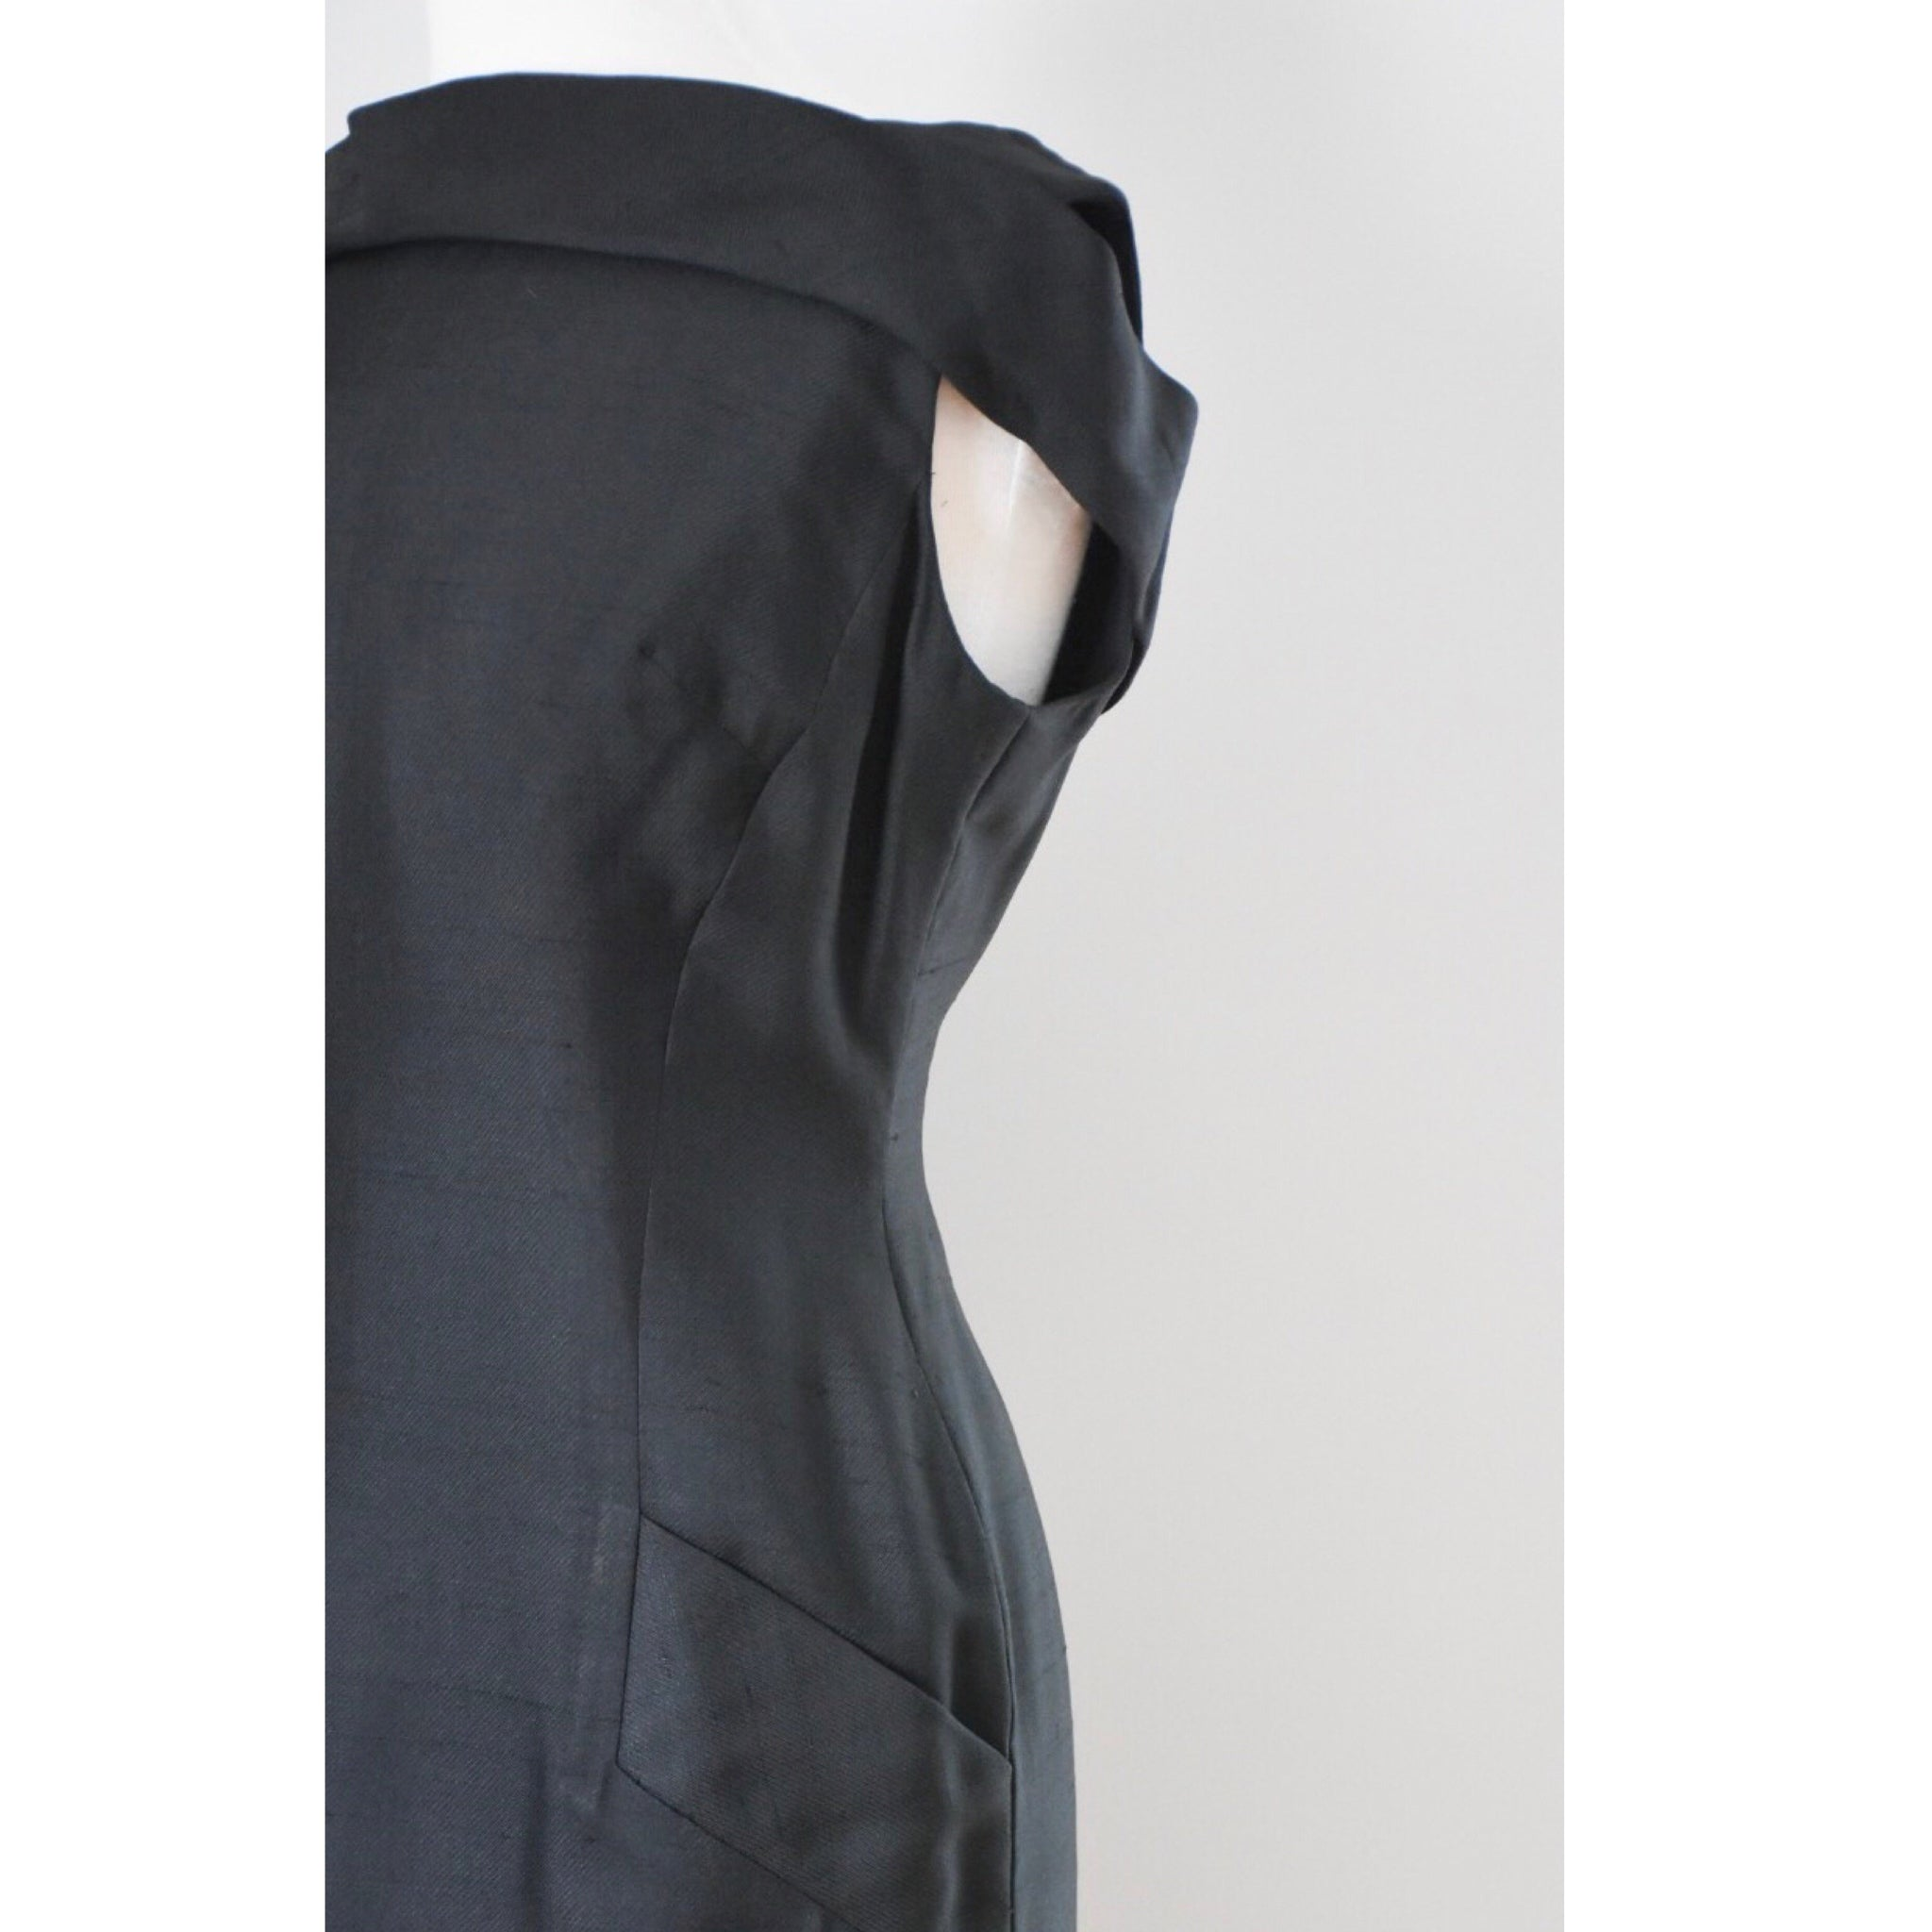 50s / 60s Black Sheath Dress from www.DuncanLovesTess.com